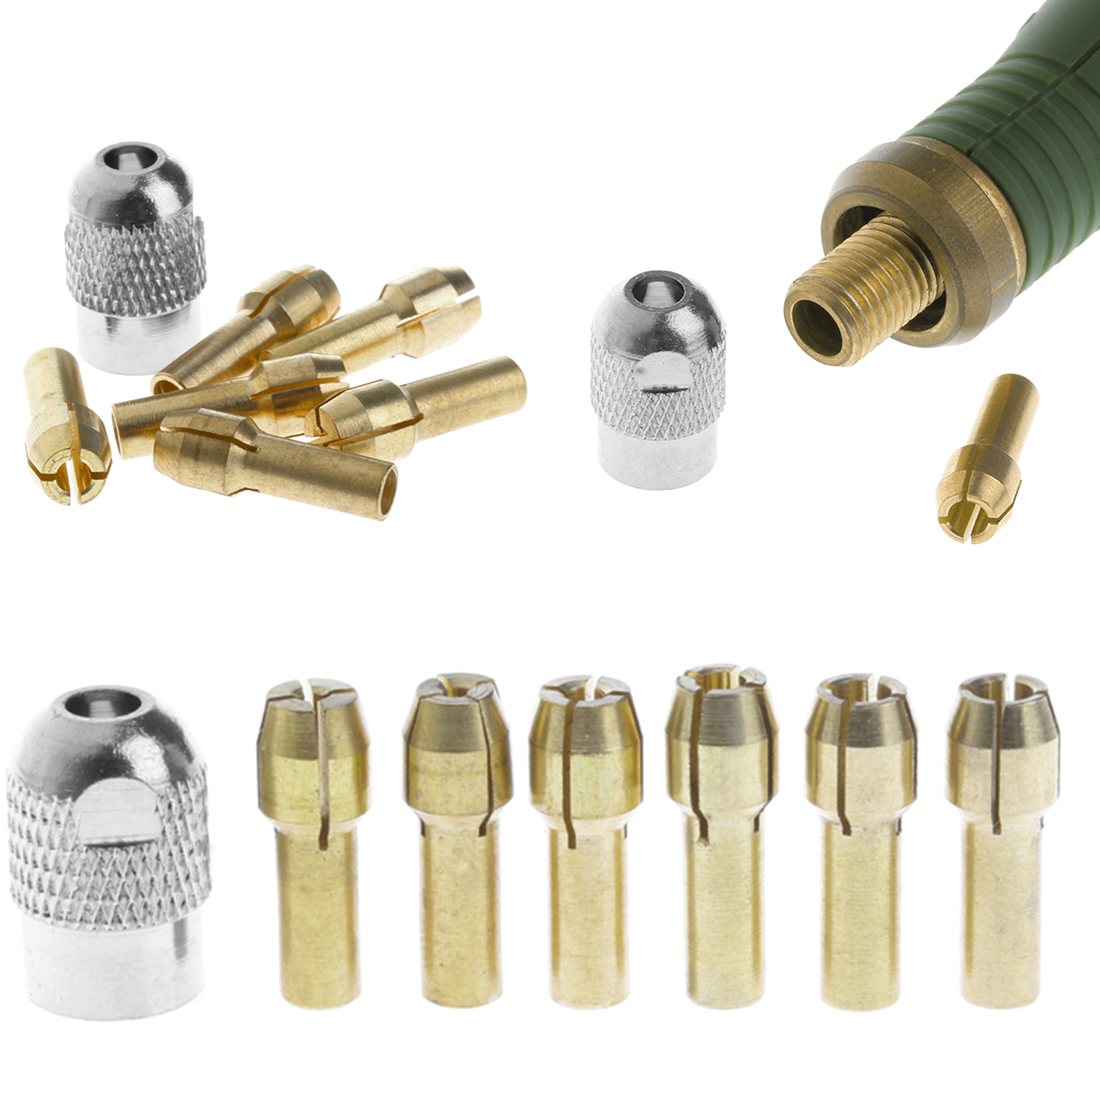 Hot 6pcs Brass Drill Collet Chucks With 1pc M8x0.75mm Black Nut Accessories For Dremel Rotary Tool 1mm,1.6mm,2mm,2.4mm,3.2mm,3mm